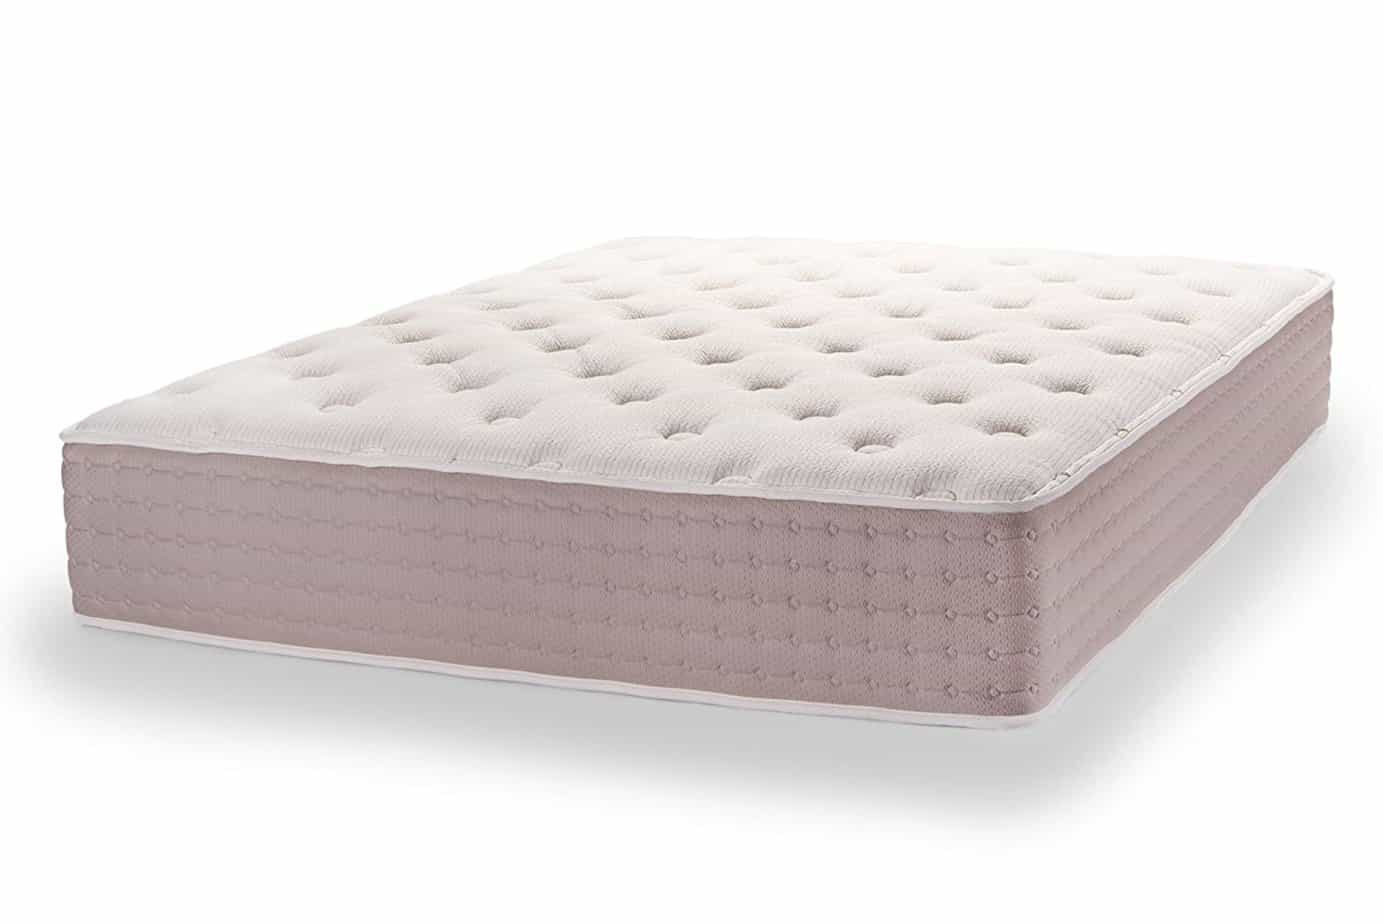 image of the Eco Terra 11-inch Luxury Latex Mattress